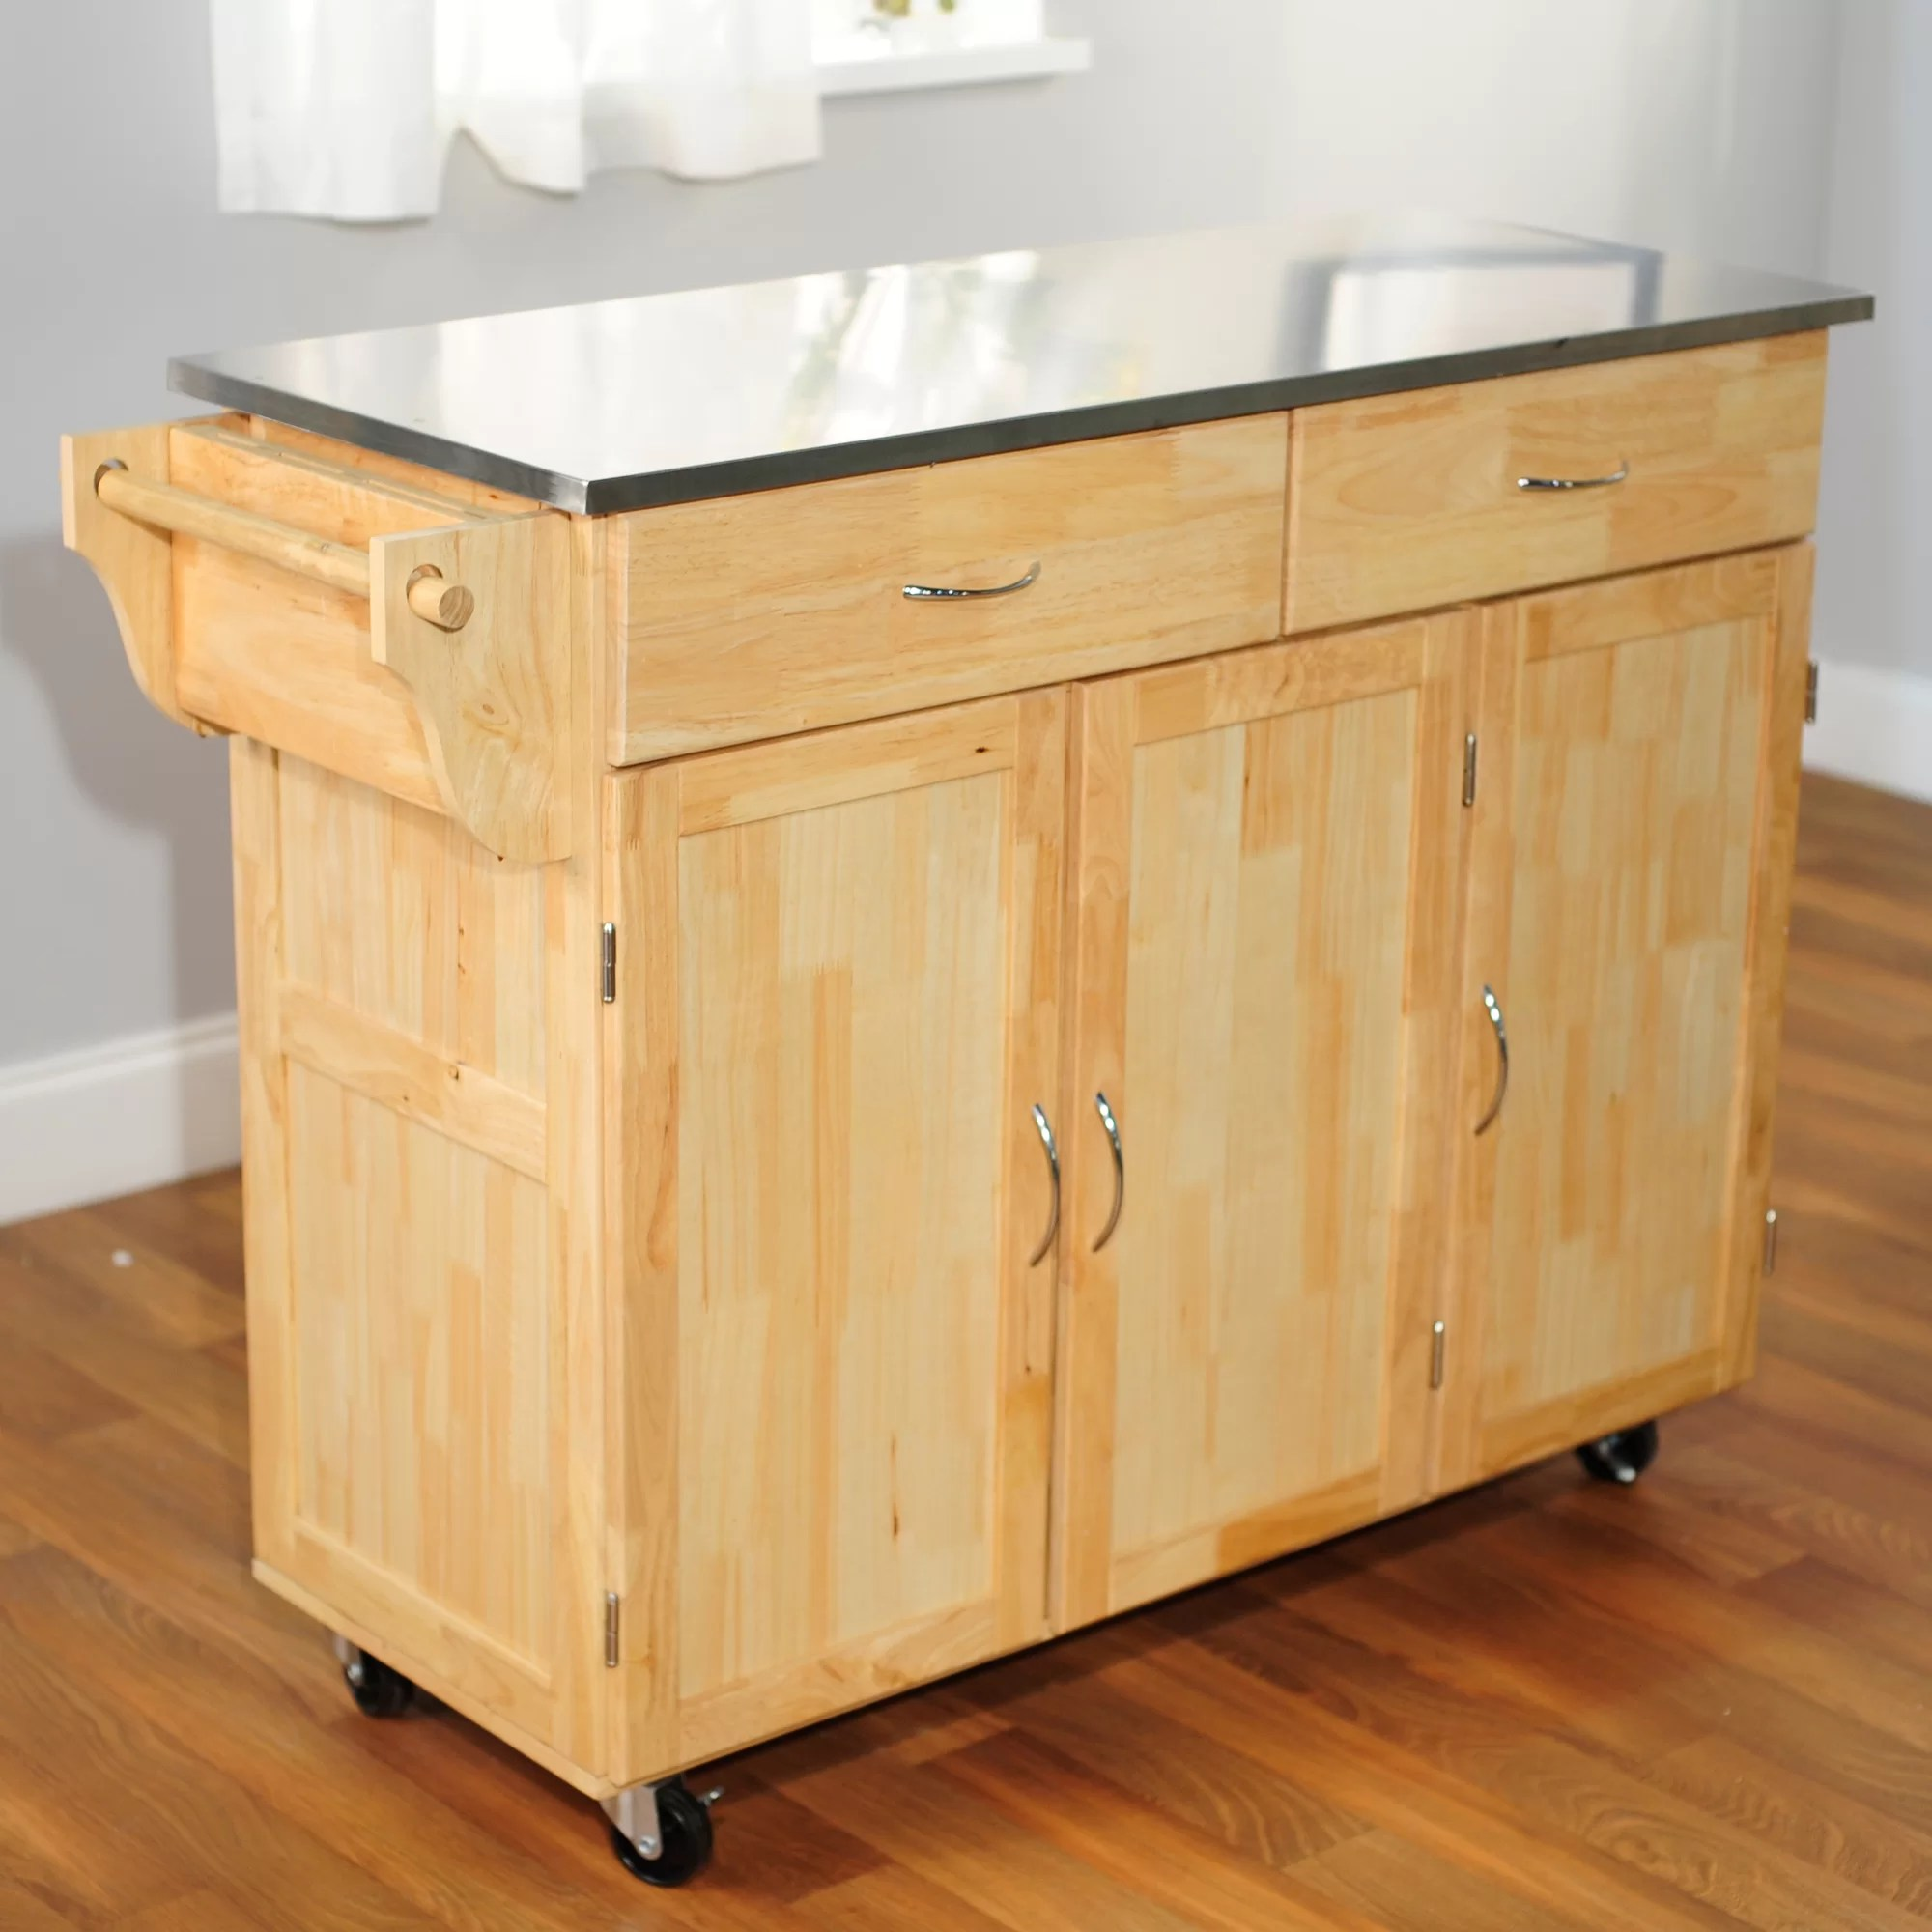 stainless steel kitchen islands under sink storage tms urban island with top ebay